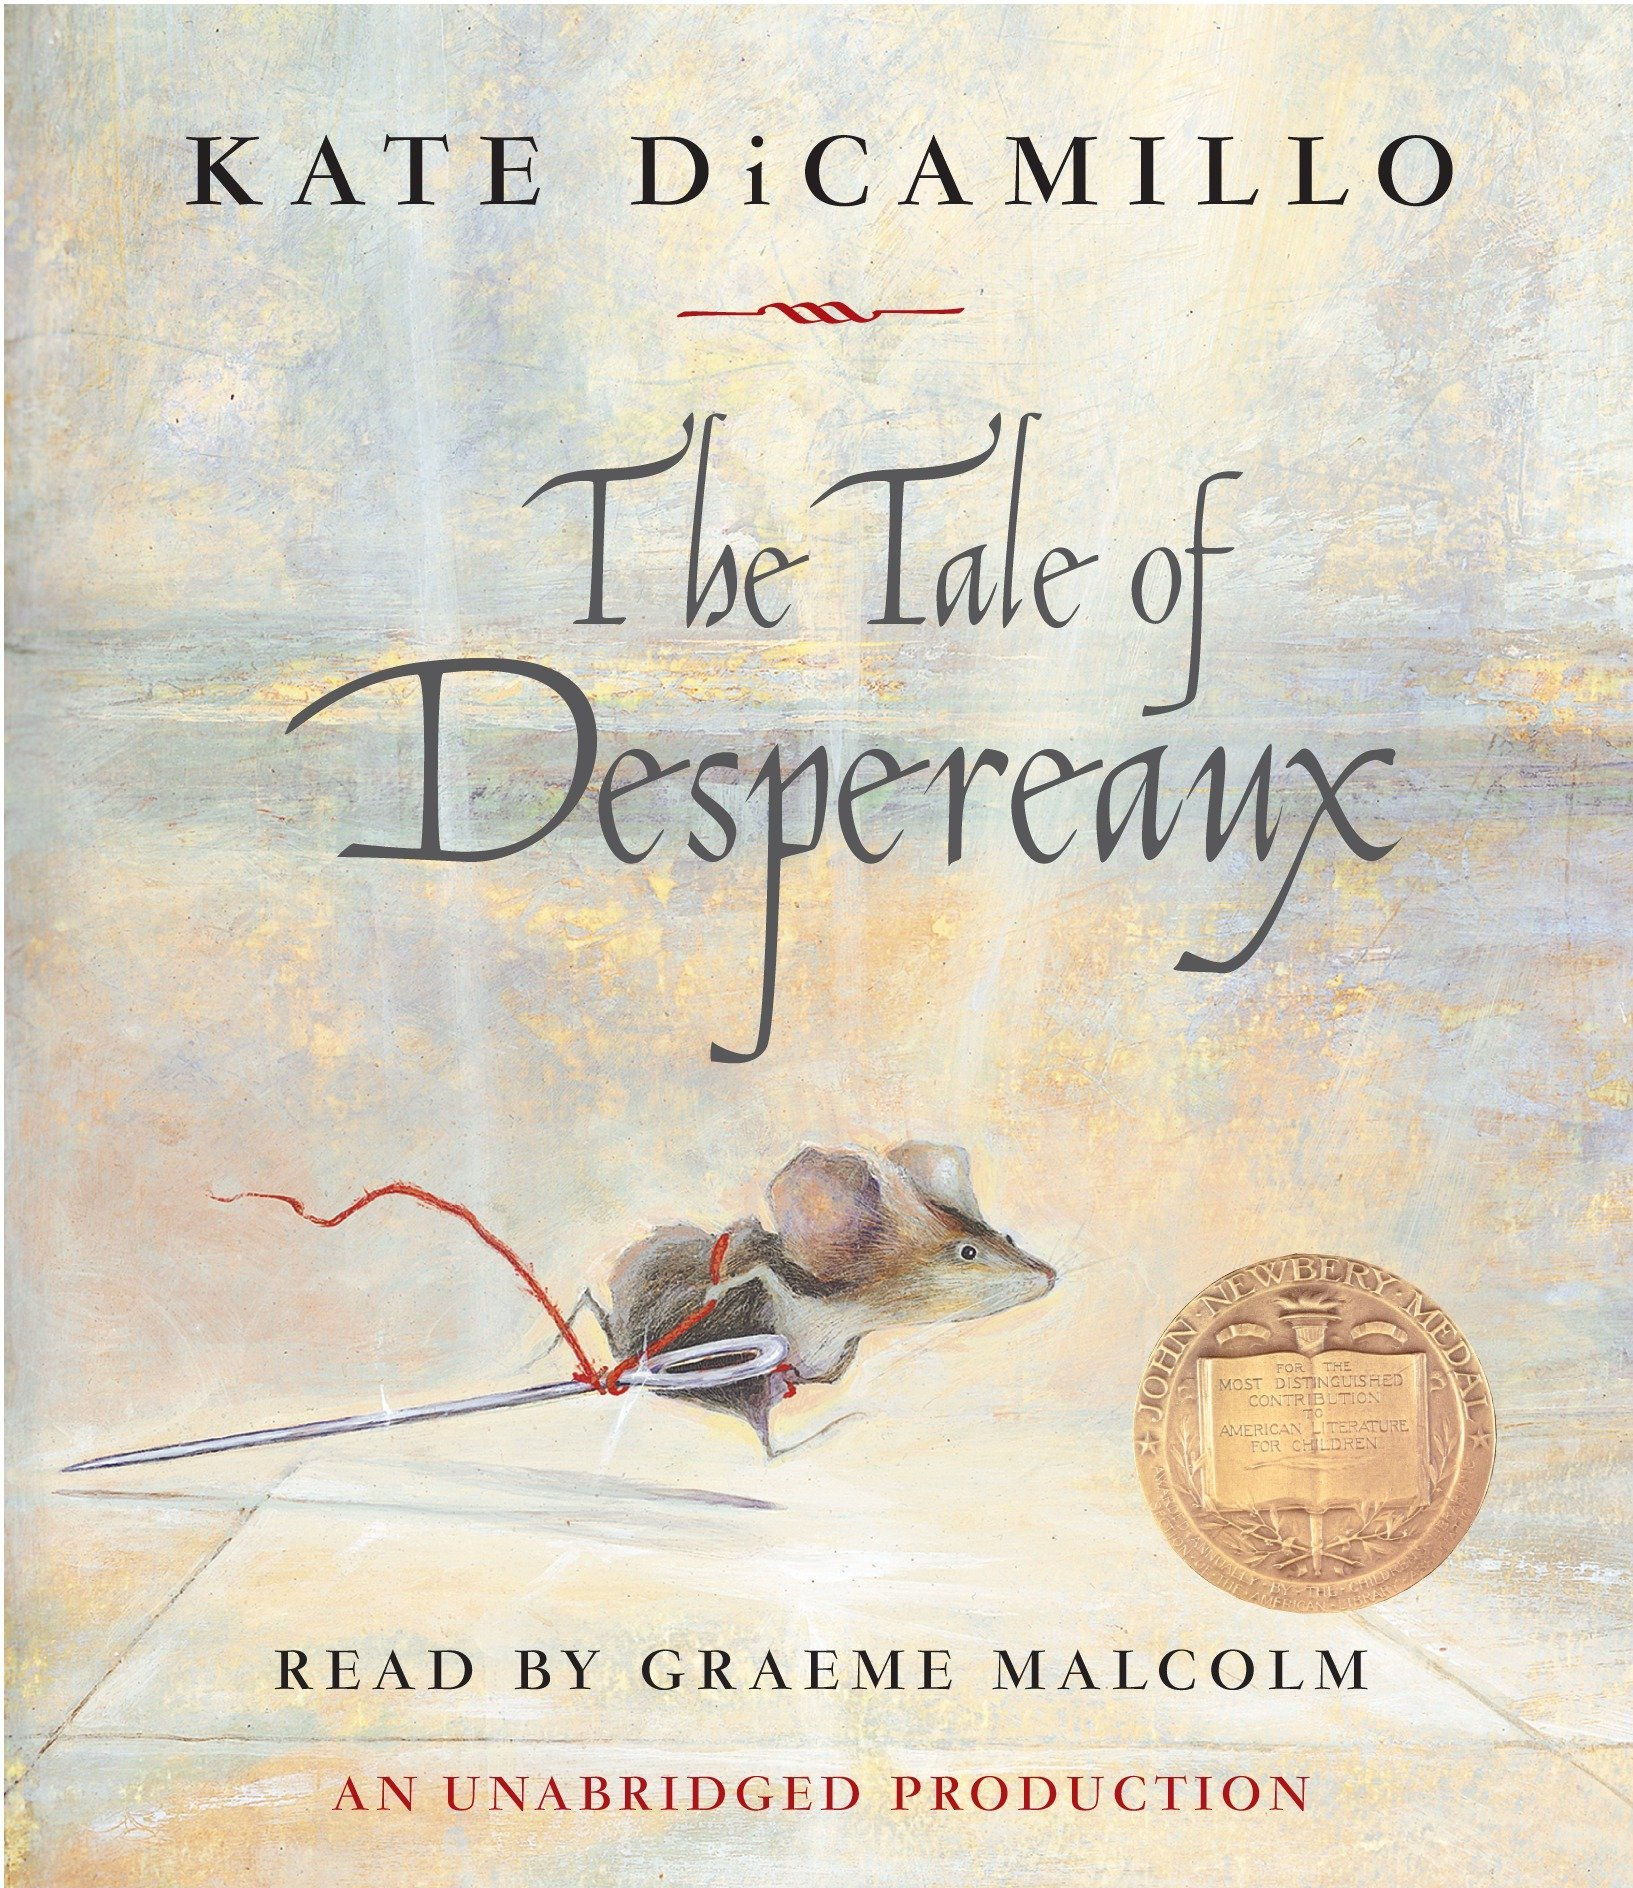 The Tale of Despereaux: Being the Story of a Mouse, a Princess, Some Soup and a Spool of Thread by Listening Library (Audio)